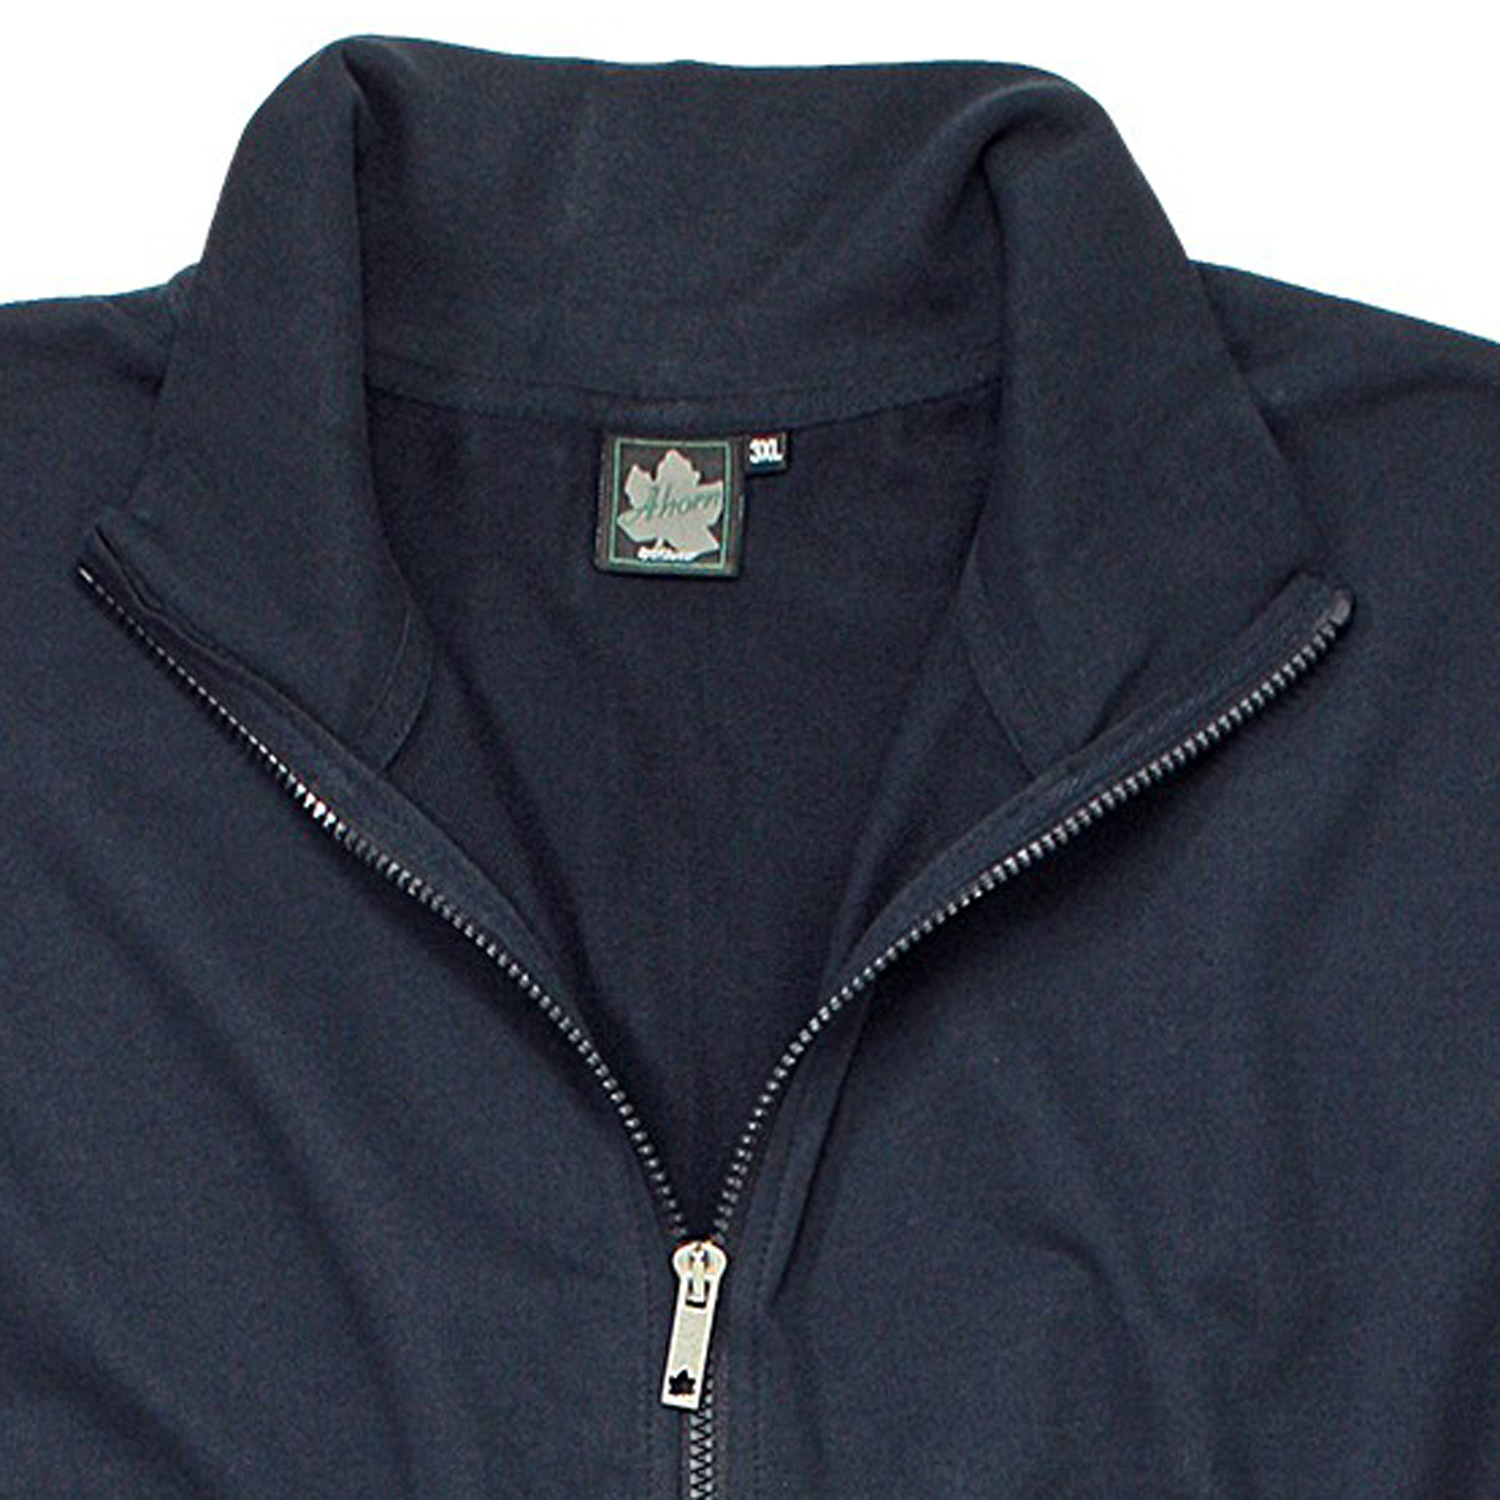 Detail Image to Black sweat jacket from Ahorn Sportswear in extra large sizes until 10 XL